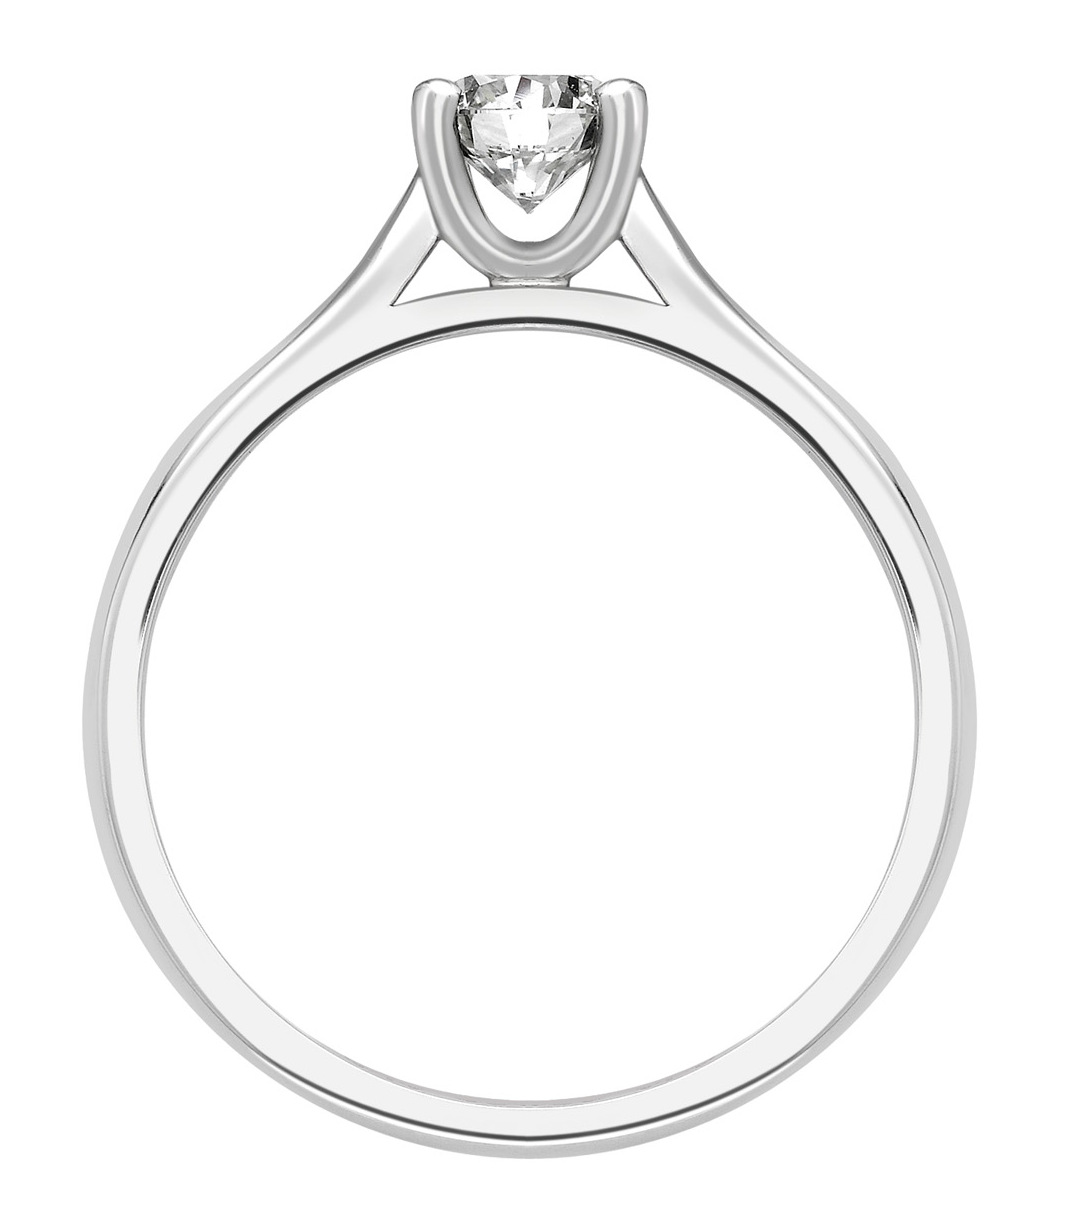 Round Four Claw Platinum Engagement Ring GRC680PLT Image 2